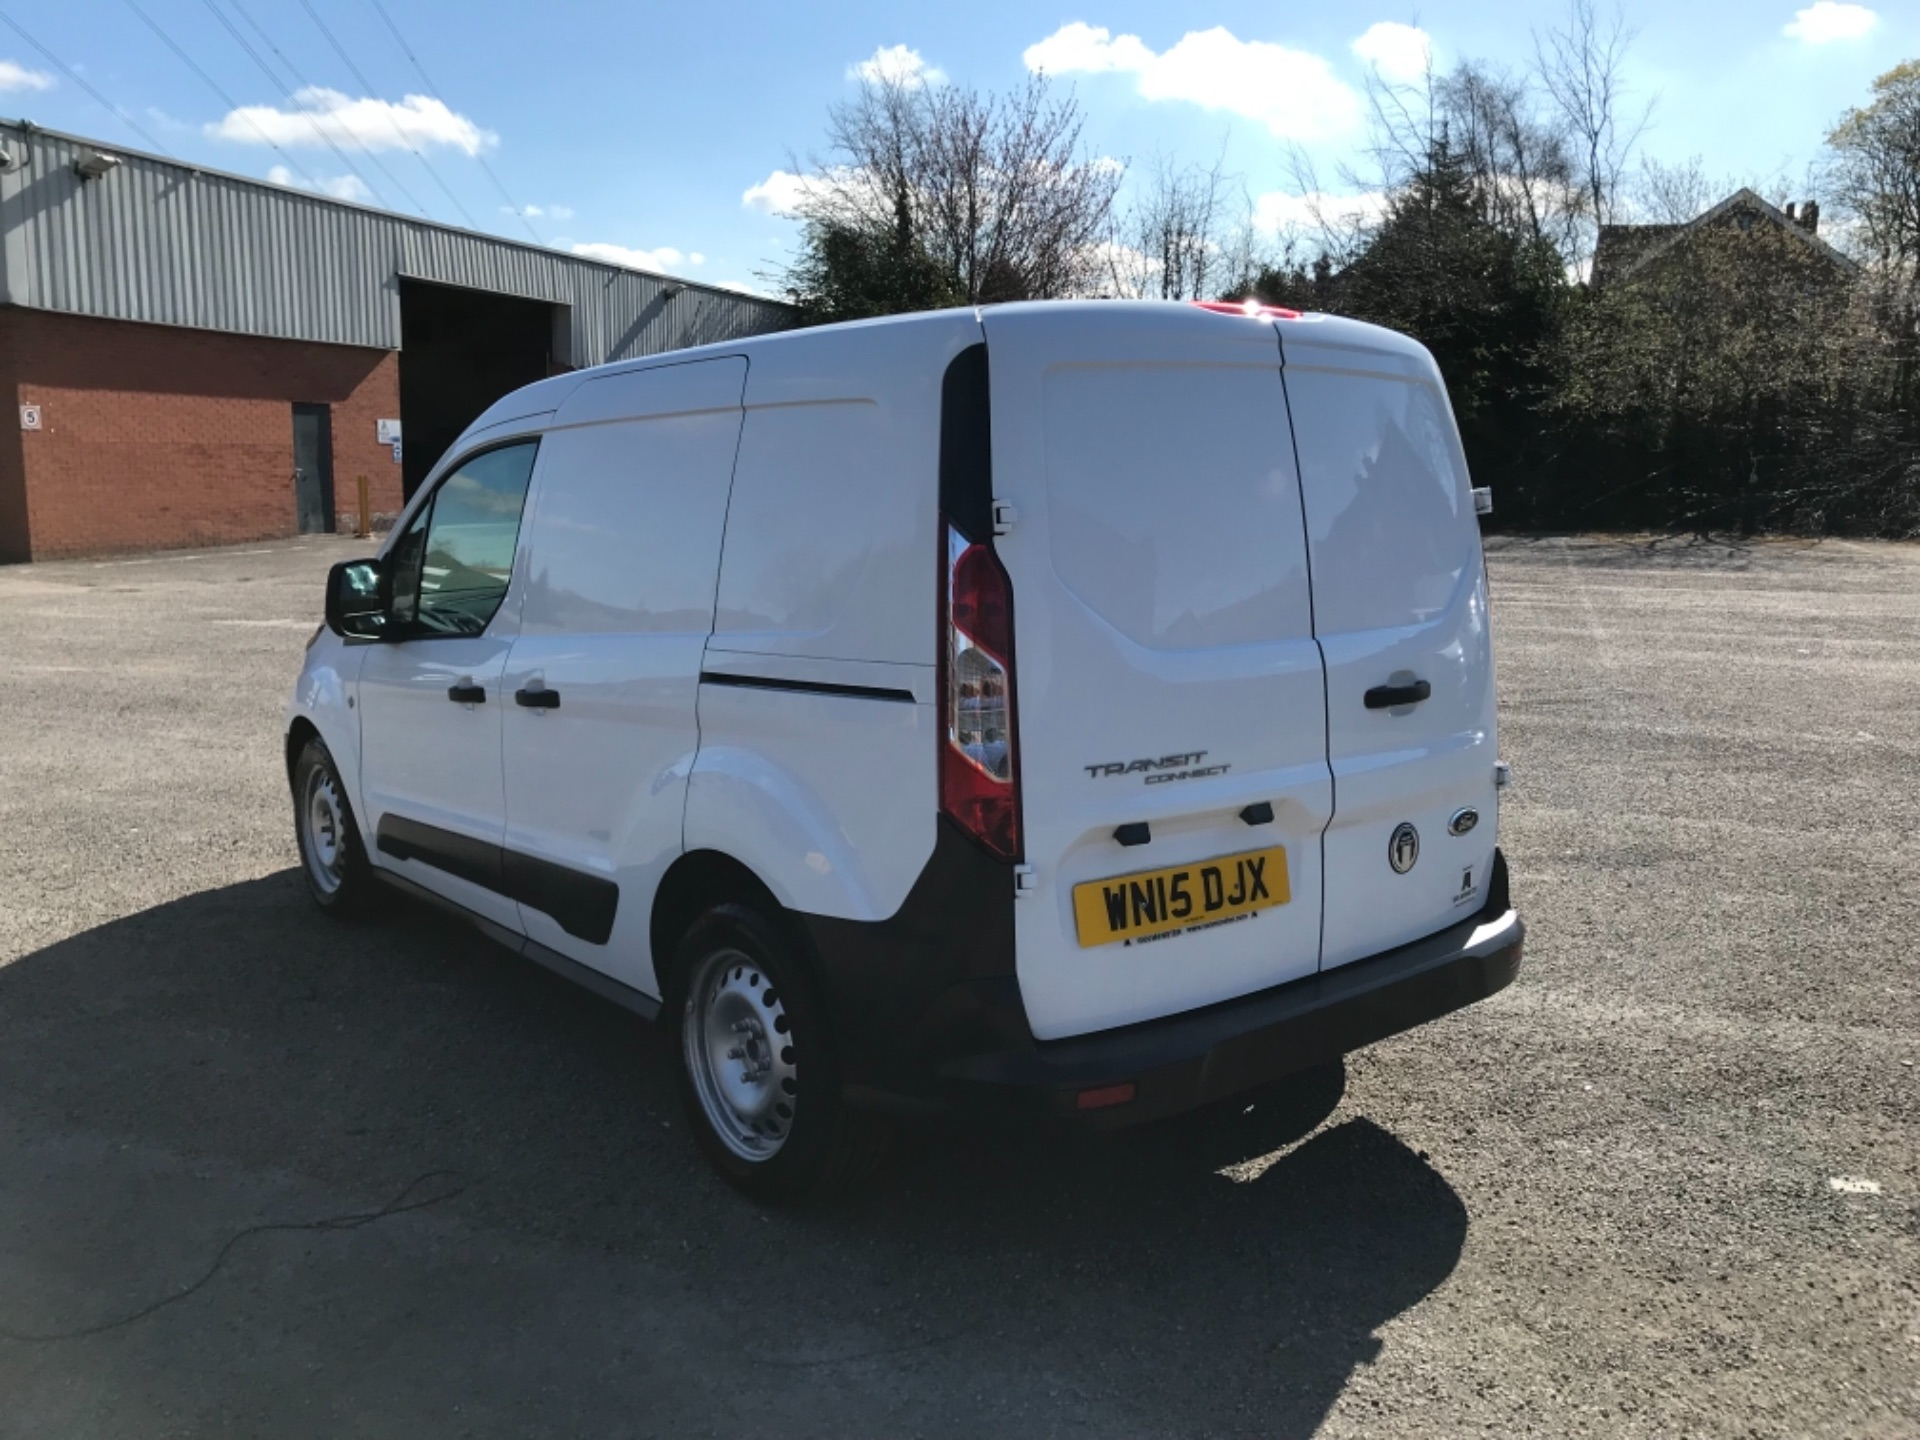 2015 Ford Transit Connect 1.6 Tdci 75Ps Van EURO 5 (WN15DJX) Thumbnail 5